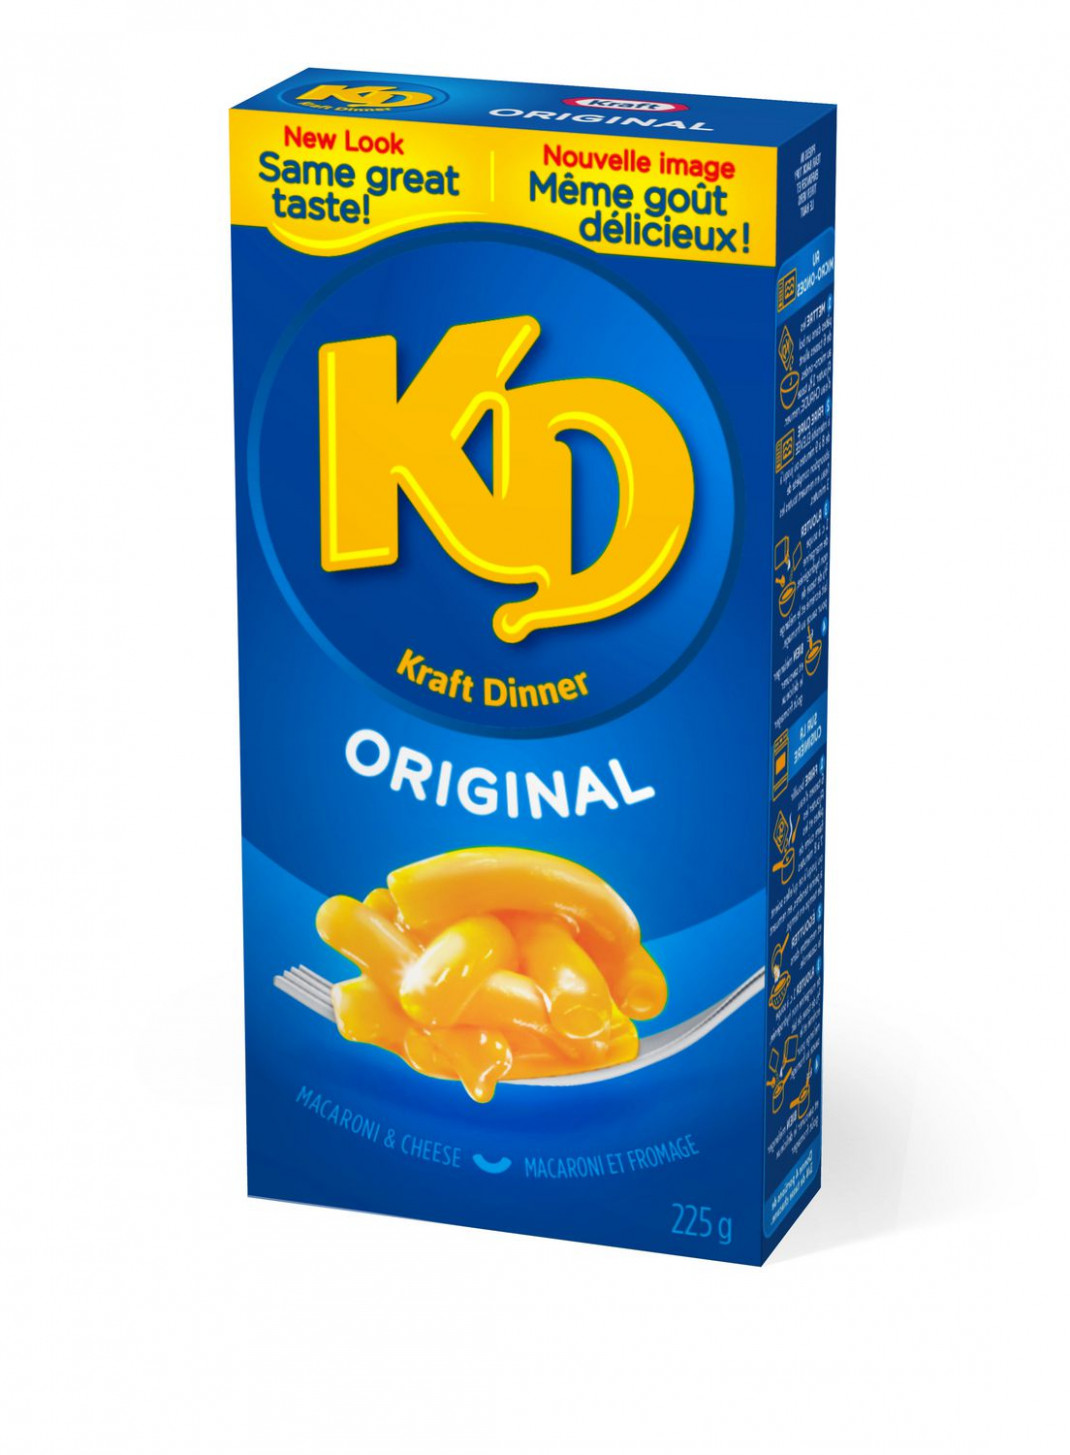 Kraft Dinner Original Macaroni & Cheese - recipes using kraft dinner